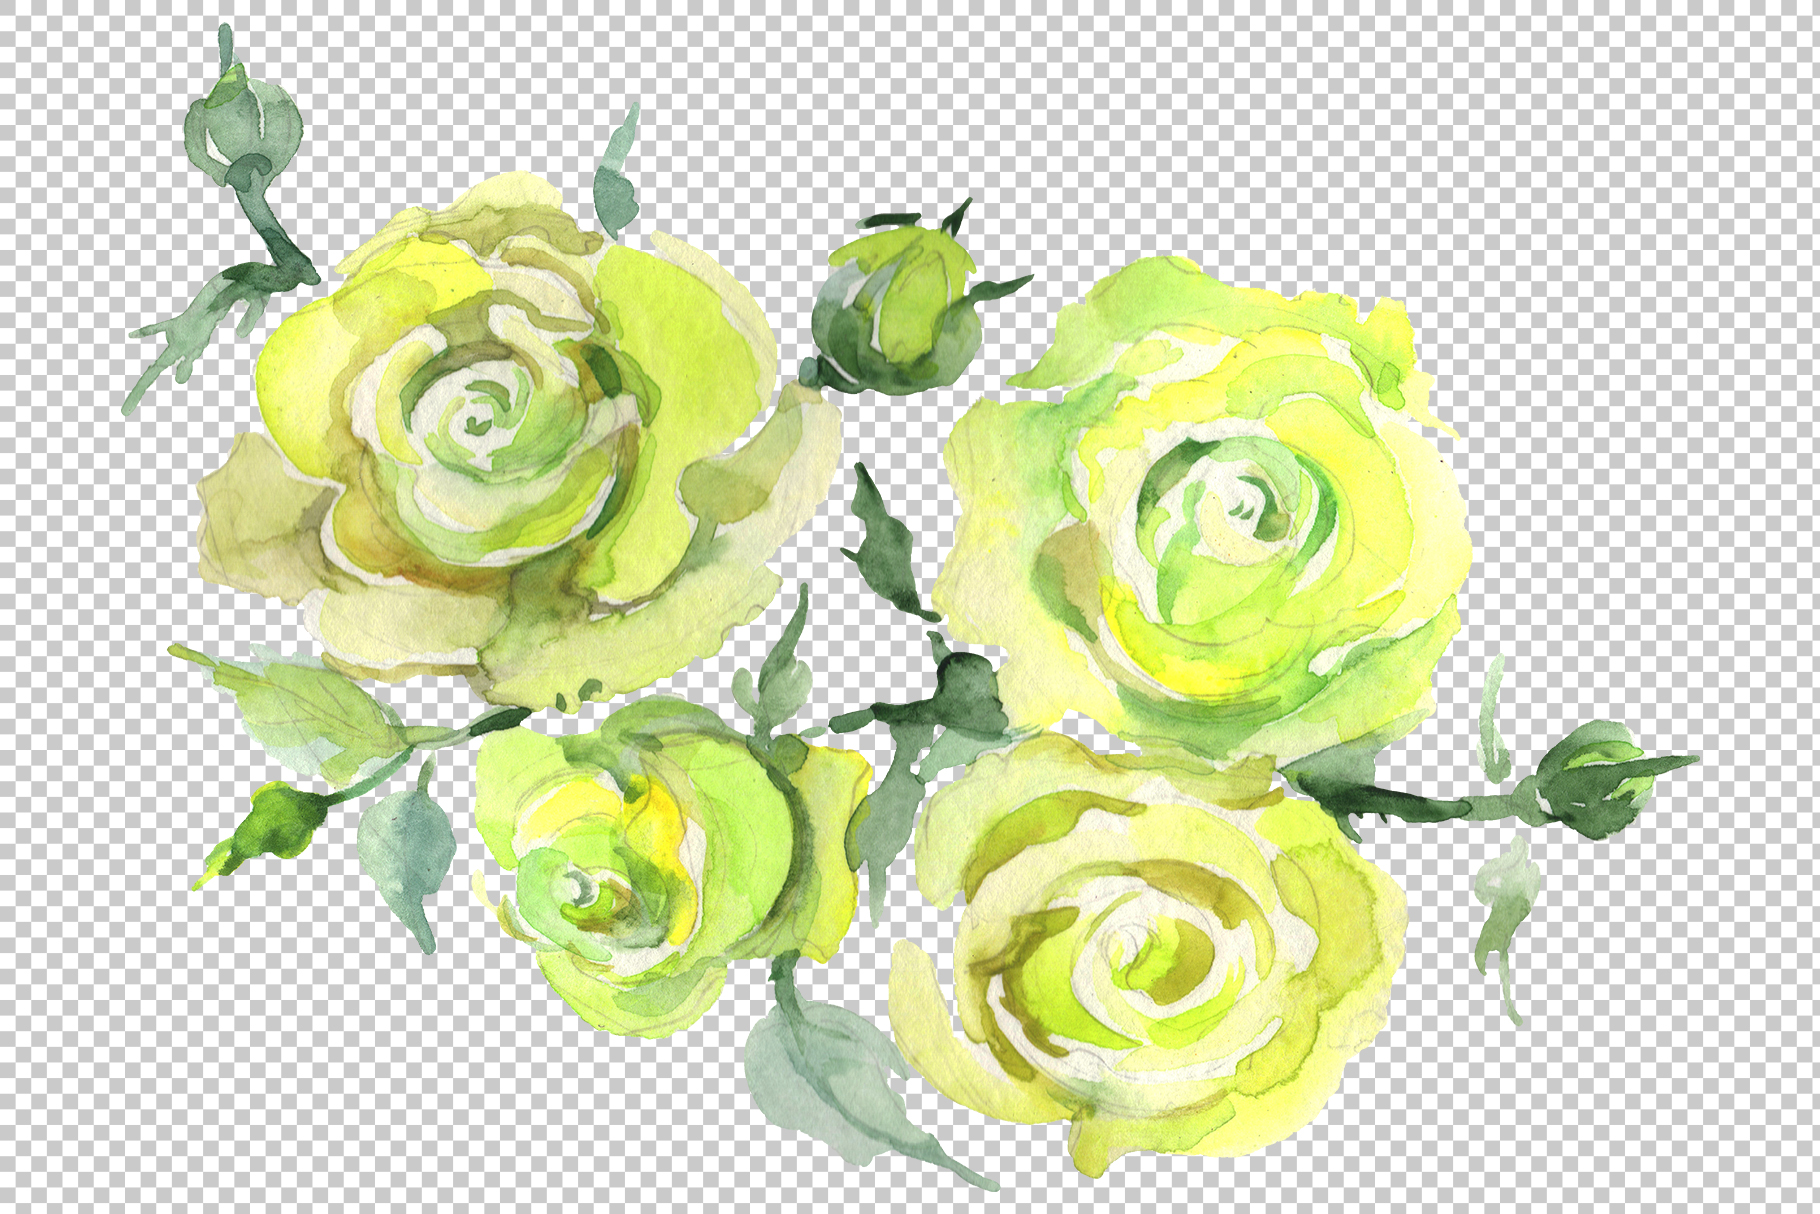 Bouquet with roses romance watercolor png example image 5